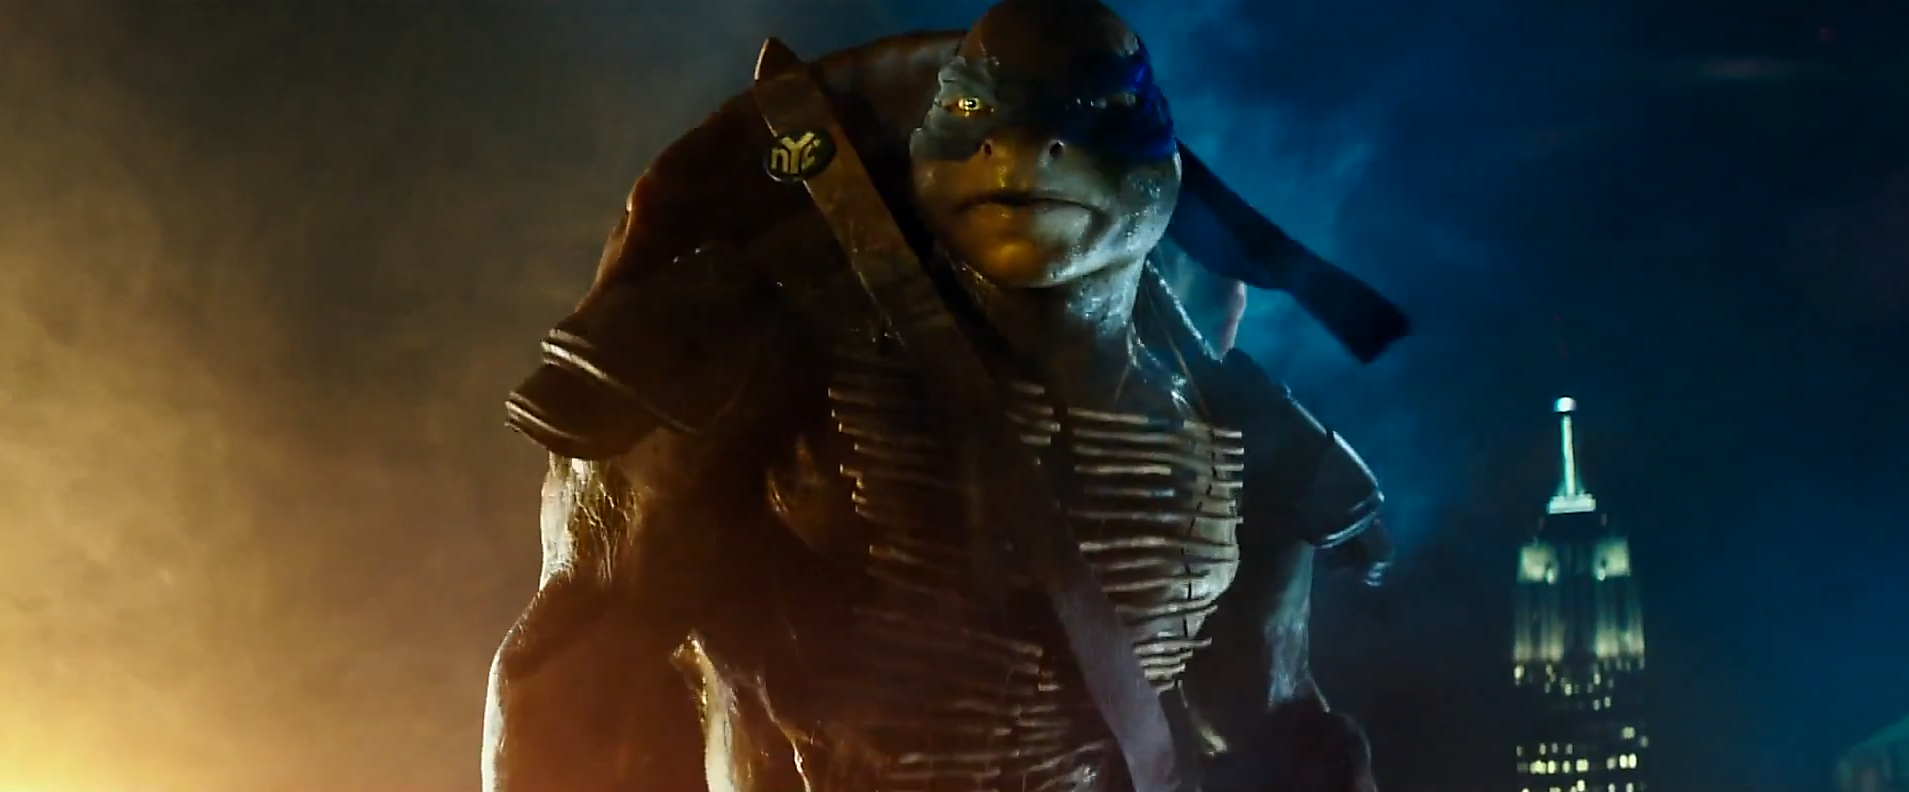 TEENAGE MUTANT NINJA-Official Poster Banner PROMO TRAILER-27MARÇO2014-04